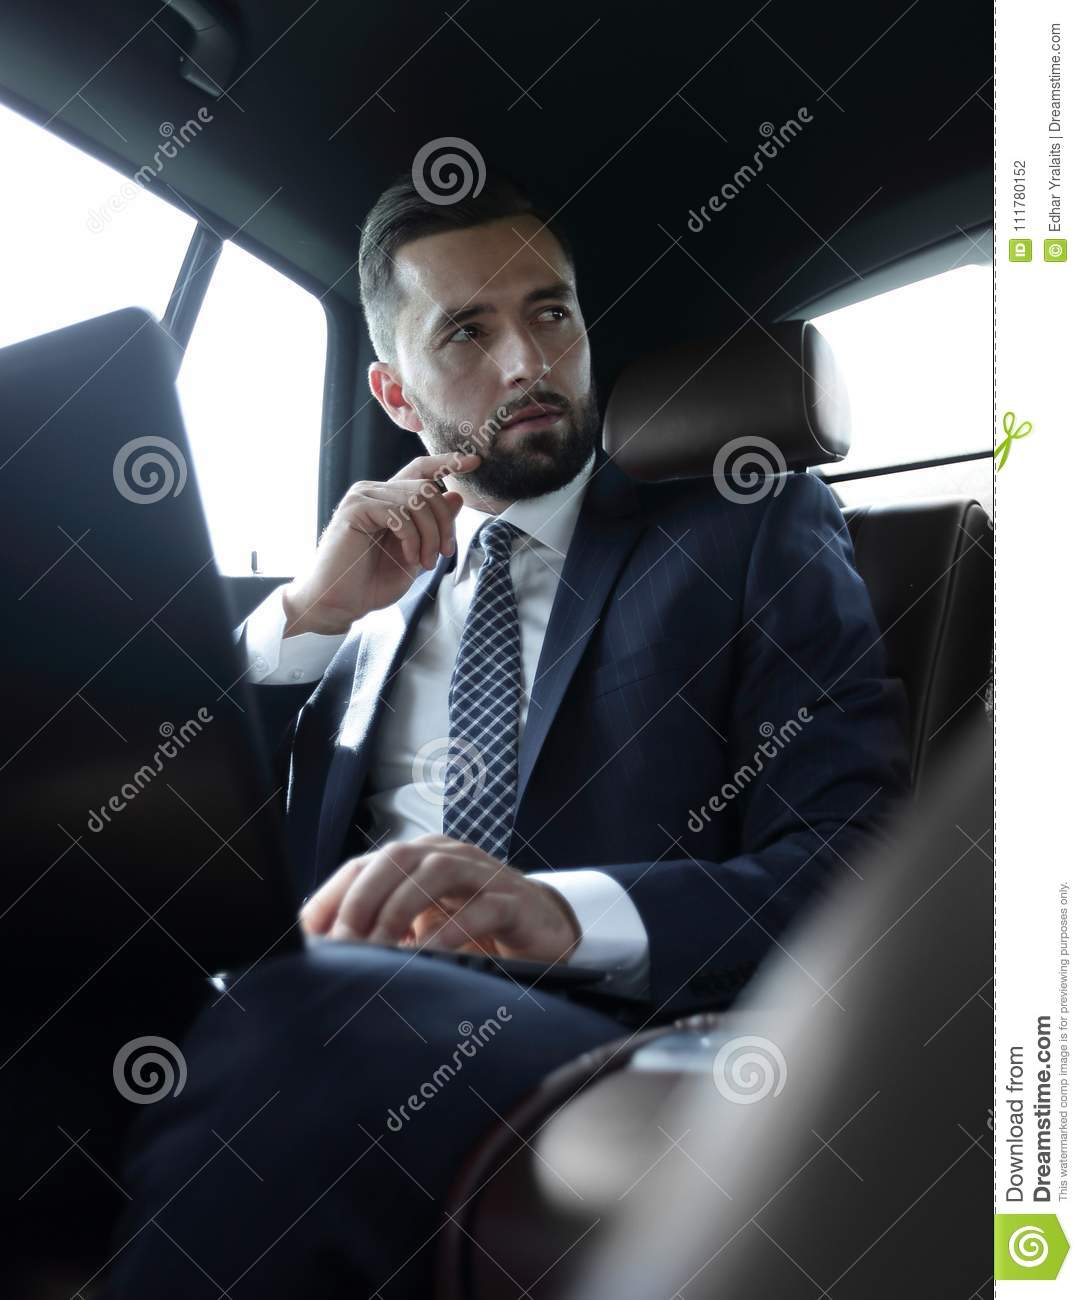 Businessman working with laptop and looking out the window of a car